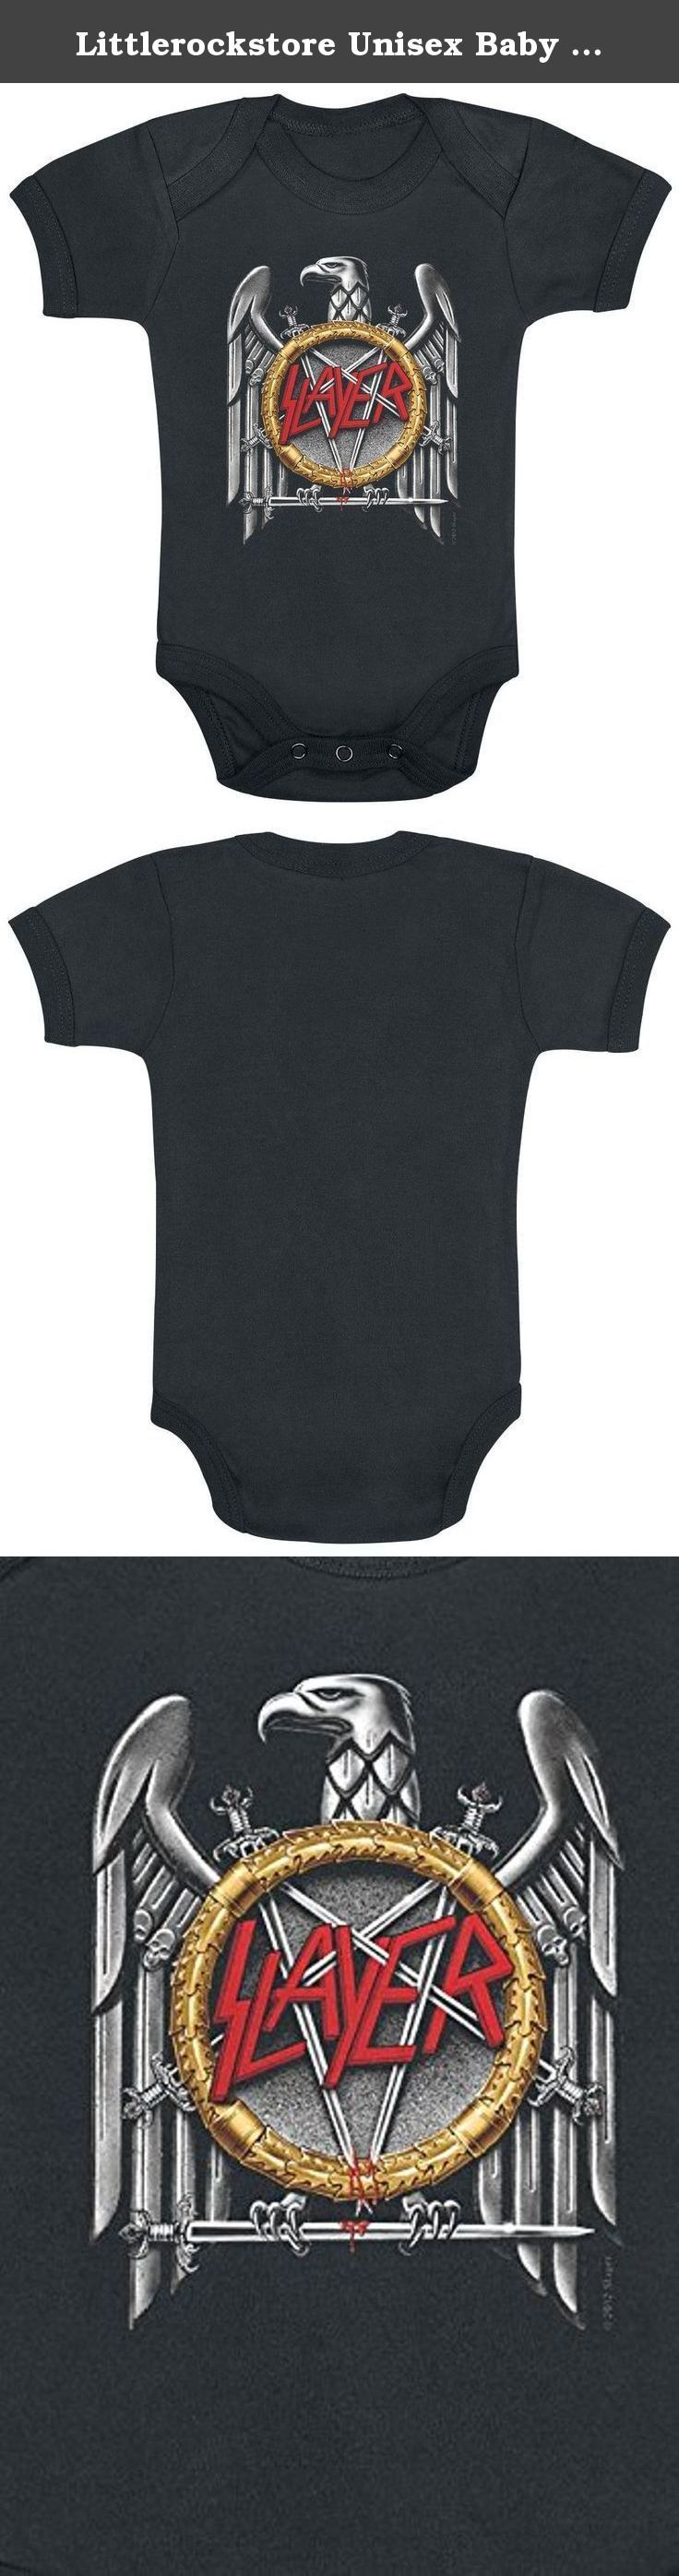 Littlerockstore Unisex Baby Slayer Onesie Metal Silver Eagle 12 - 18 Months Black. Slayer bodysuit infant metal Silver Eagle. Officially licensed merchandise, great quality, brand new and usually ships within 24 hours!.